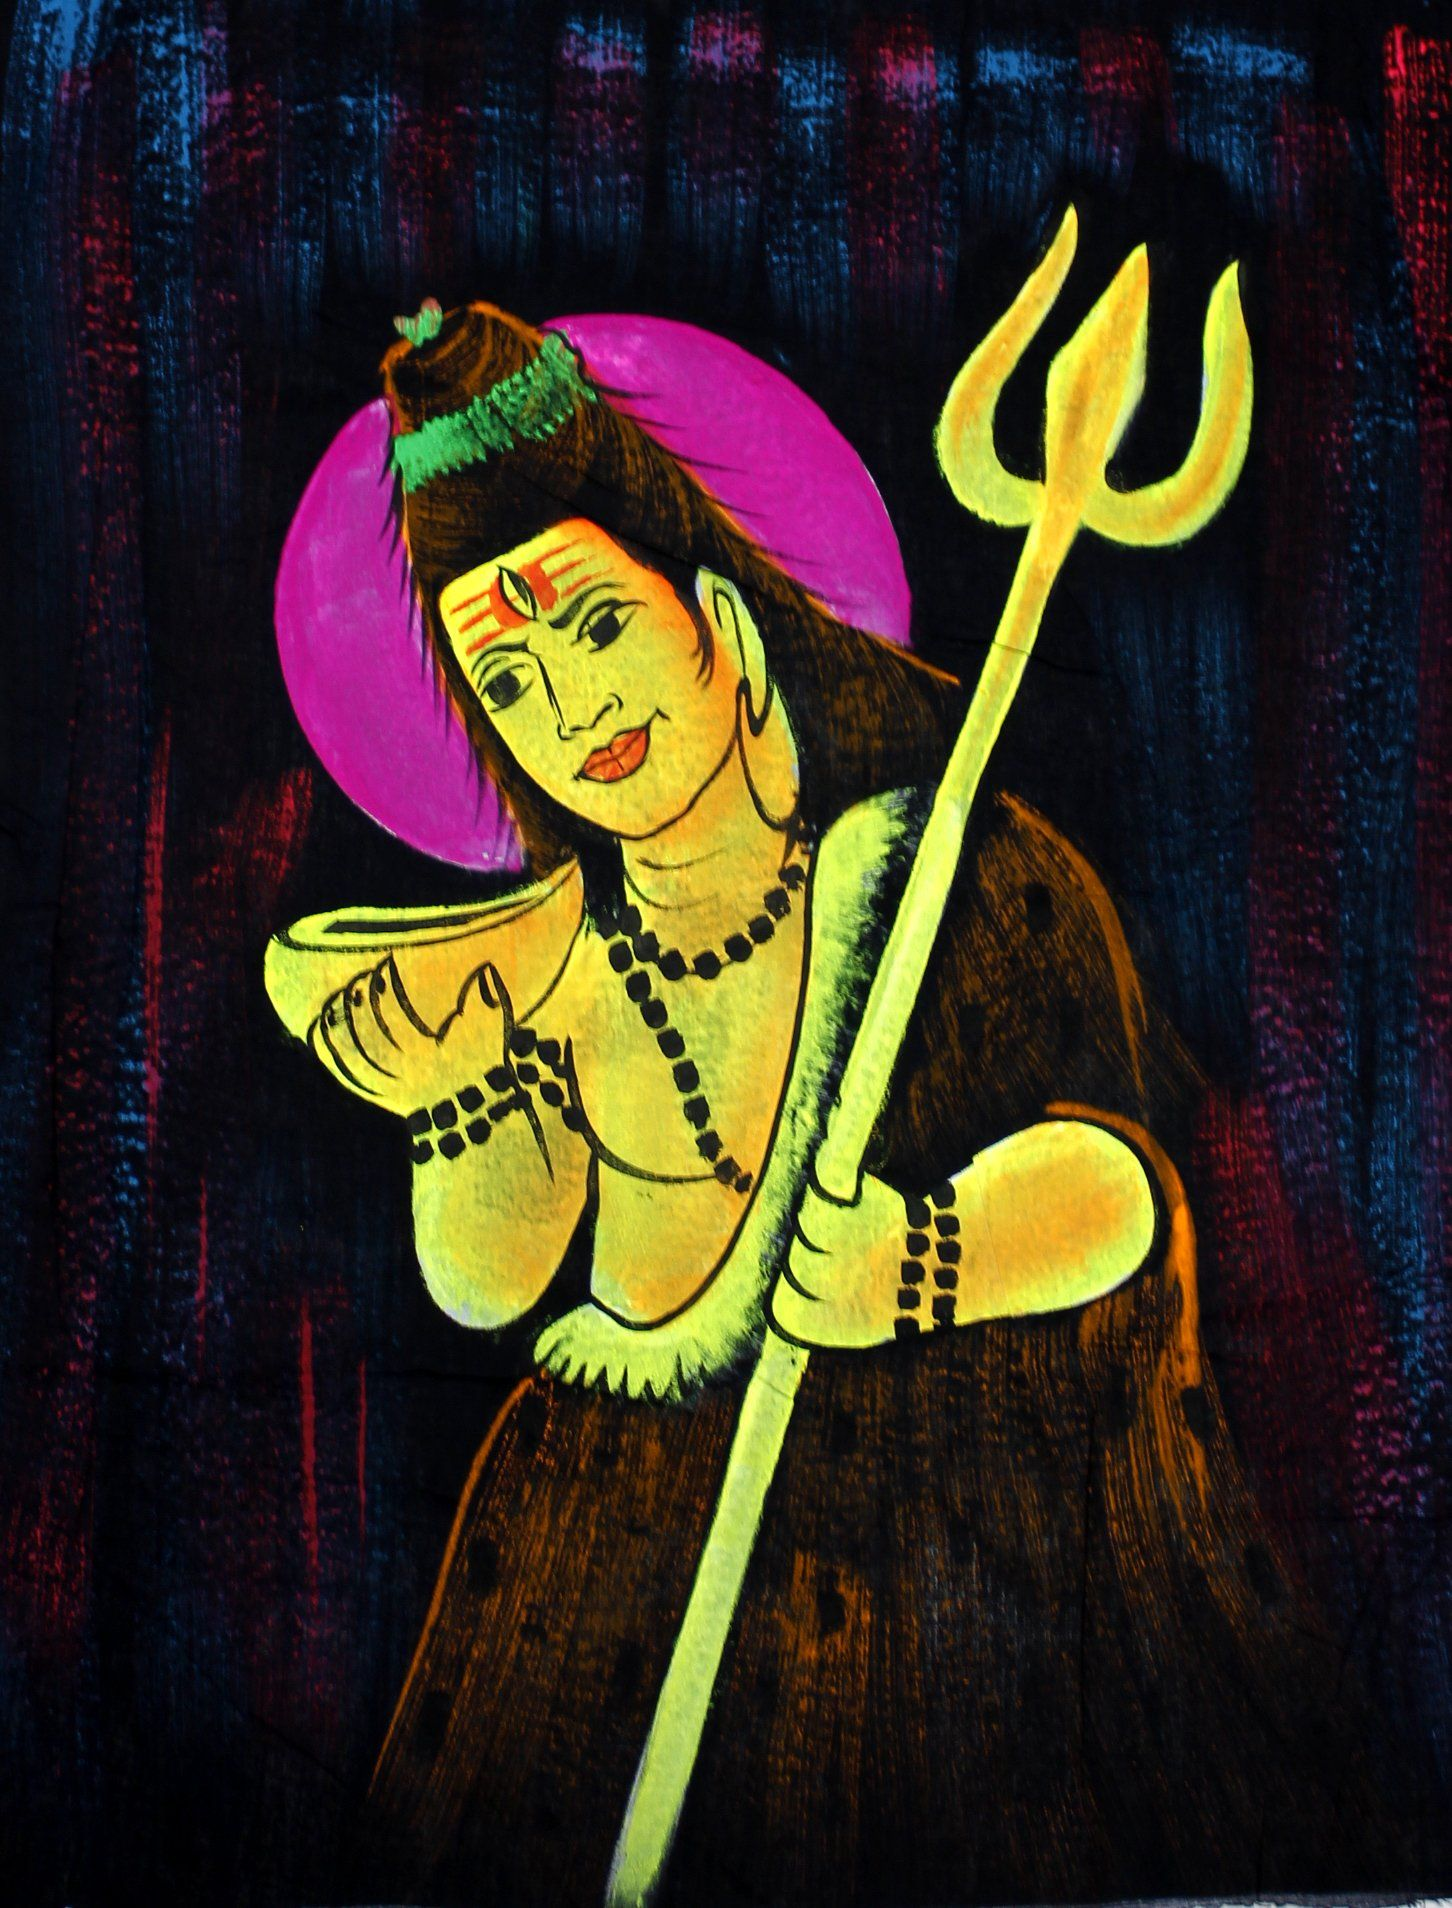 Indian Hindu Lord Shiva Tapestry Deity Art Uv Painting Fabric Wall ...